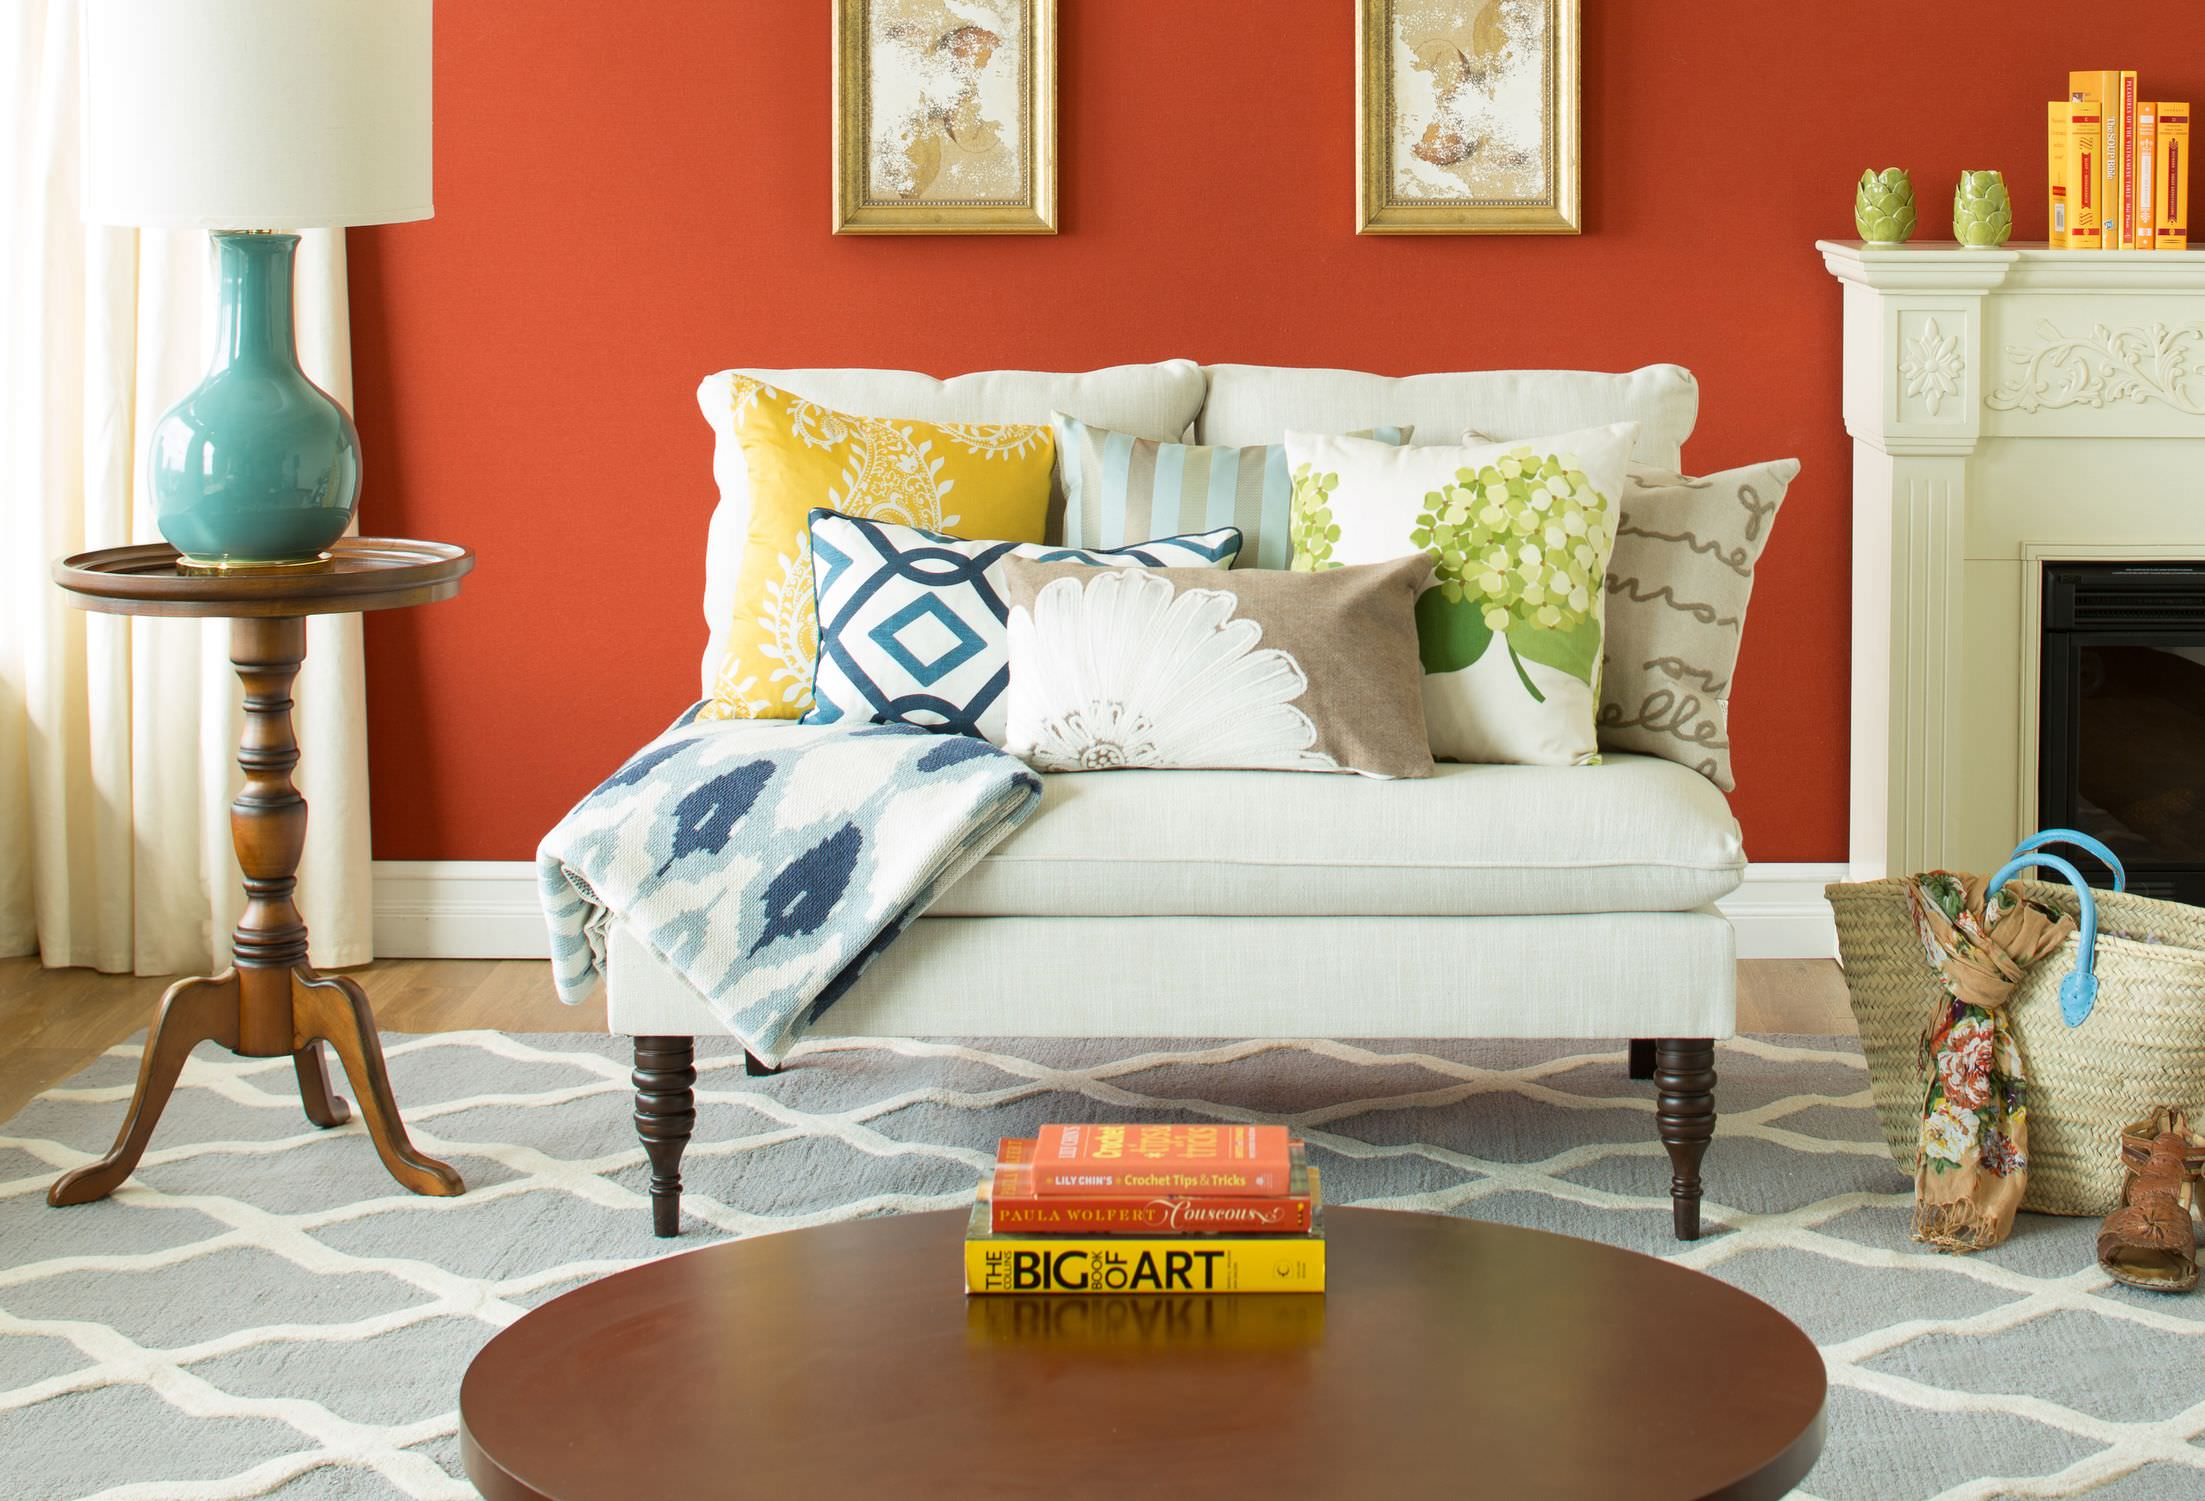 The simple orange background wall a few books stacked as a centerpiece and the